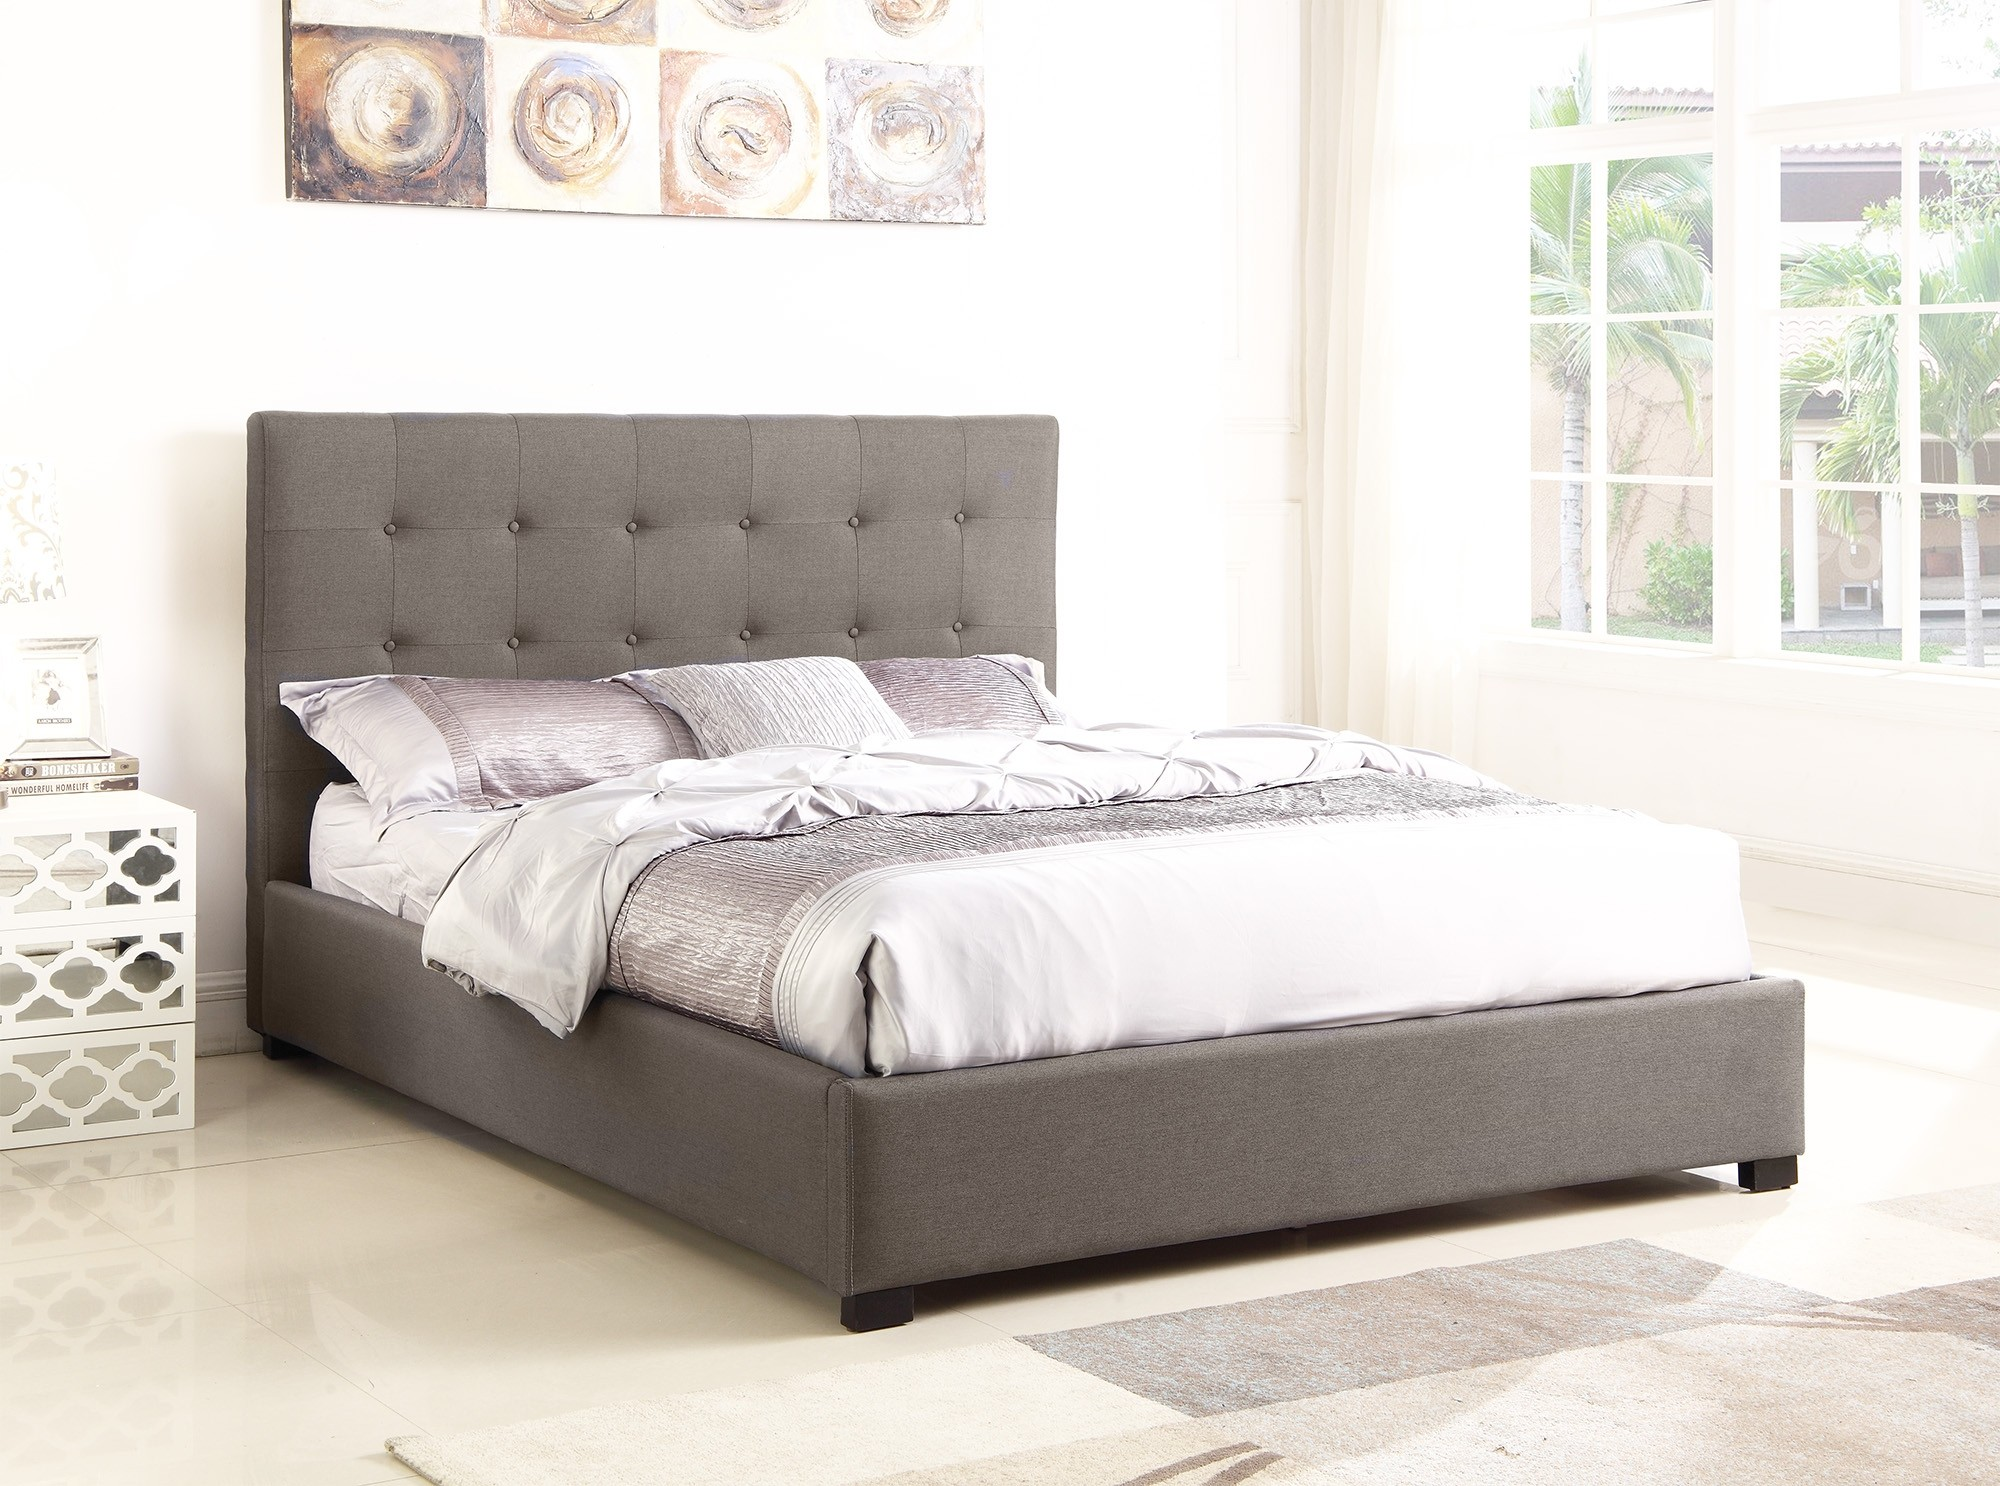 lit coffre layton sommier 160cm tissu taupe. Black Bedroom Furniture Sets. Home Design Ideas